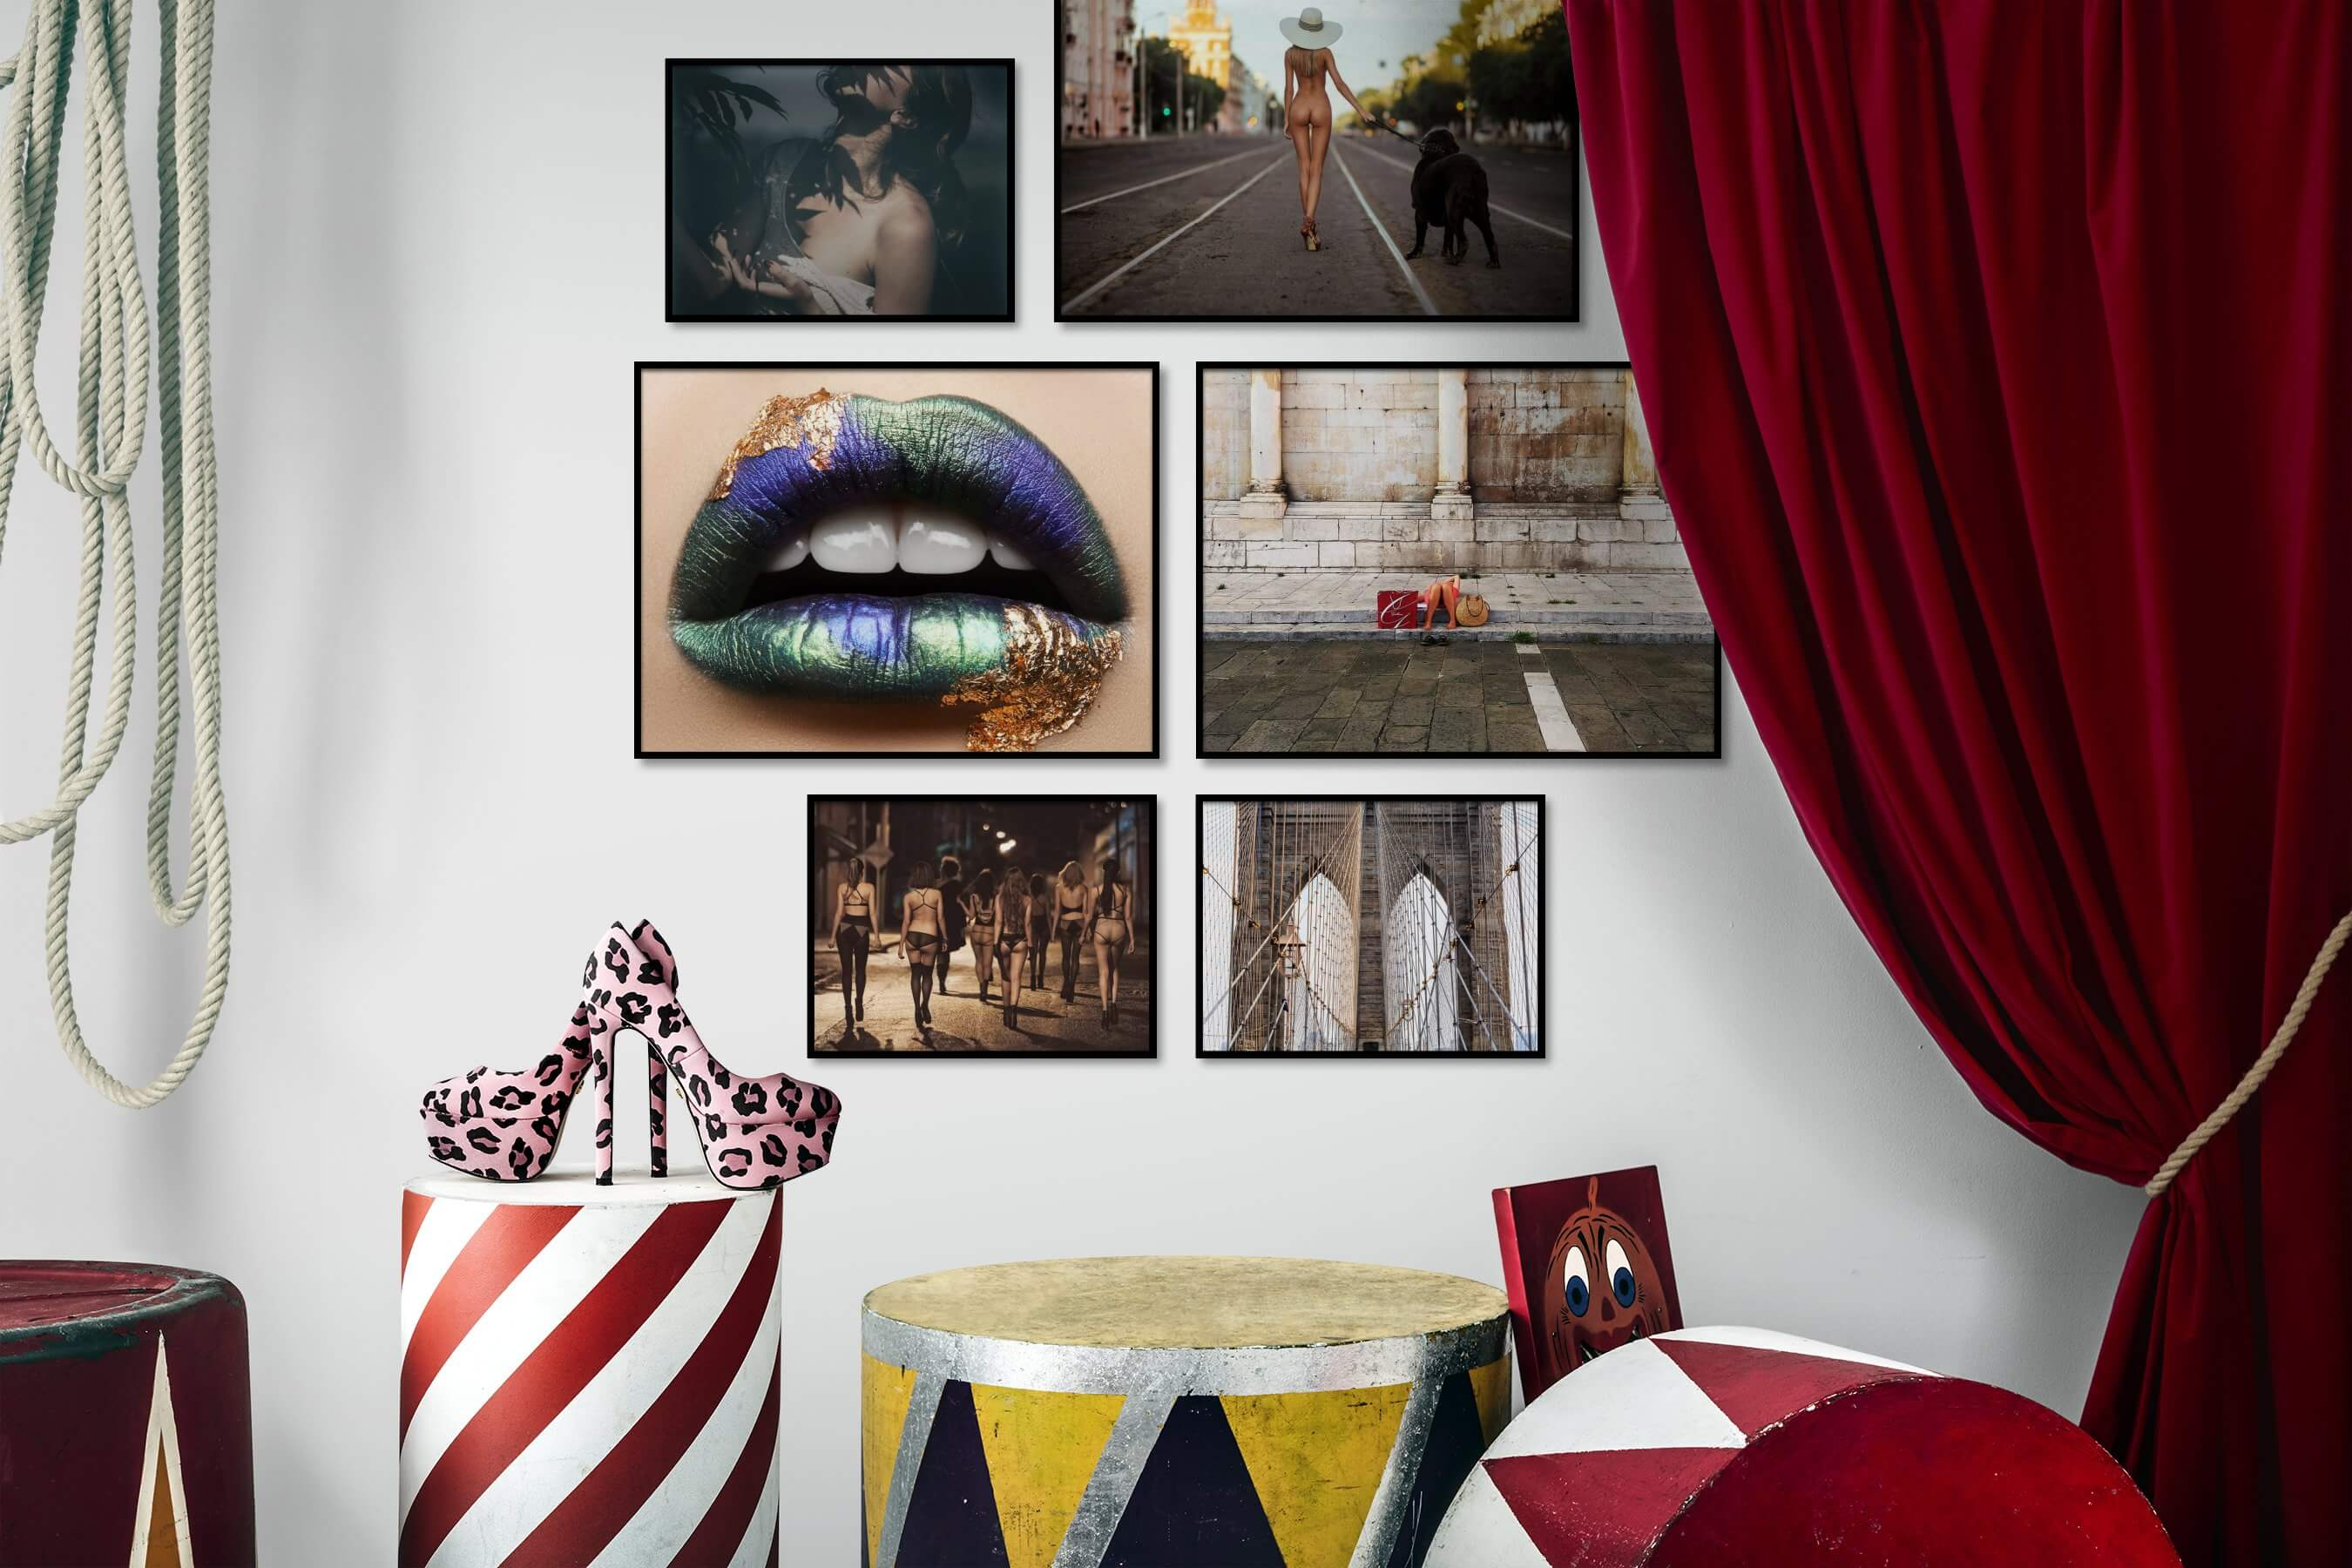 Gallery wall idea with six framed pictures arranged on a wall depicting Fashion & Beauty, Artsy, City Life, Colorful, For the Moderate, and Americana